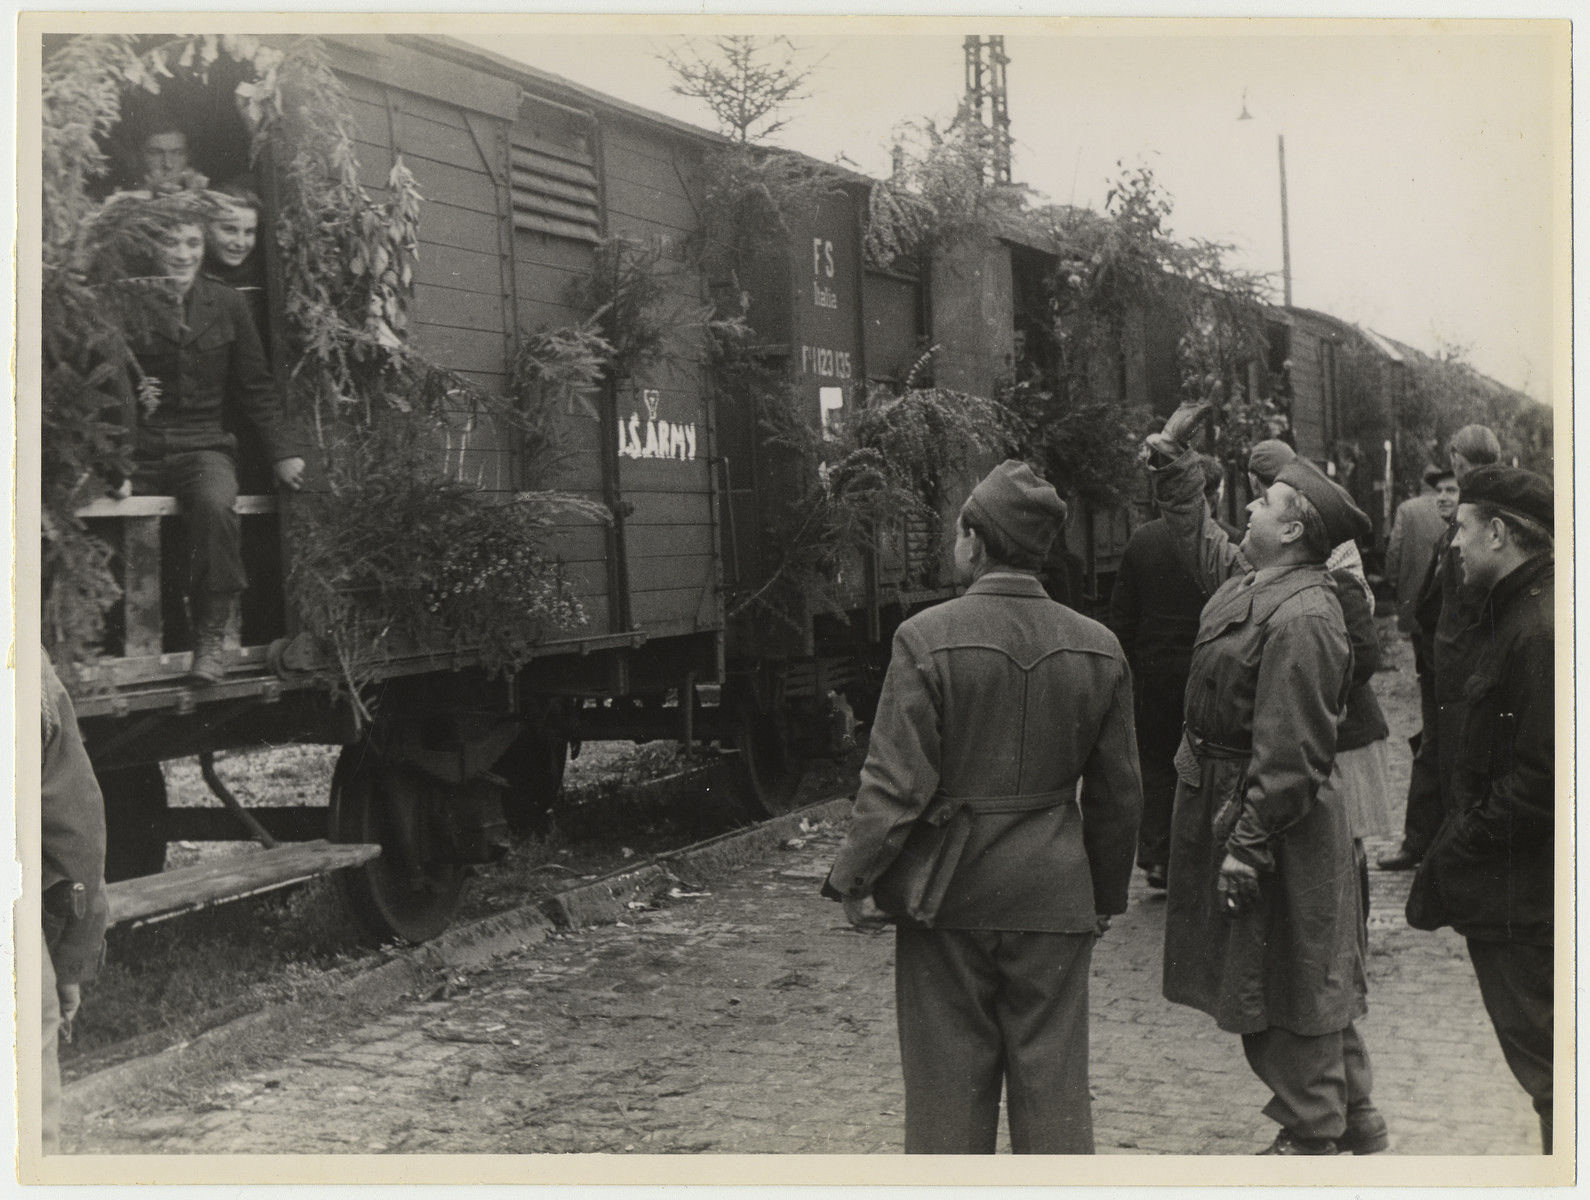 UNRRA workers say farewell to displaced persons leaving Germany on a decorated U.S. Army train.